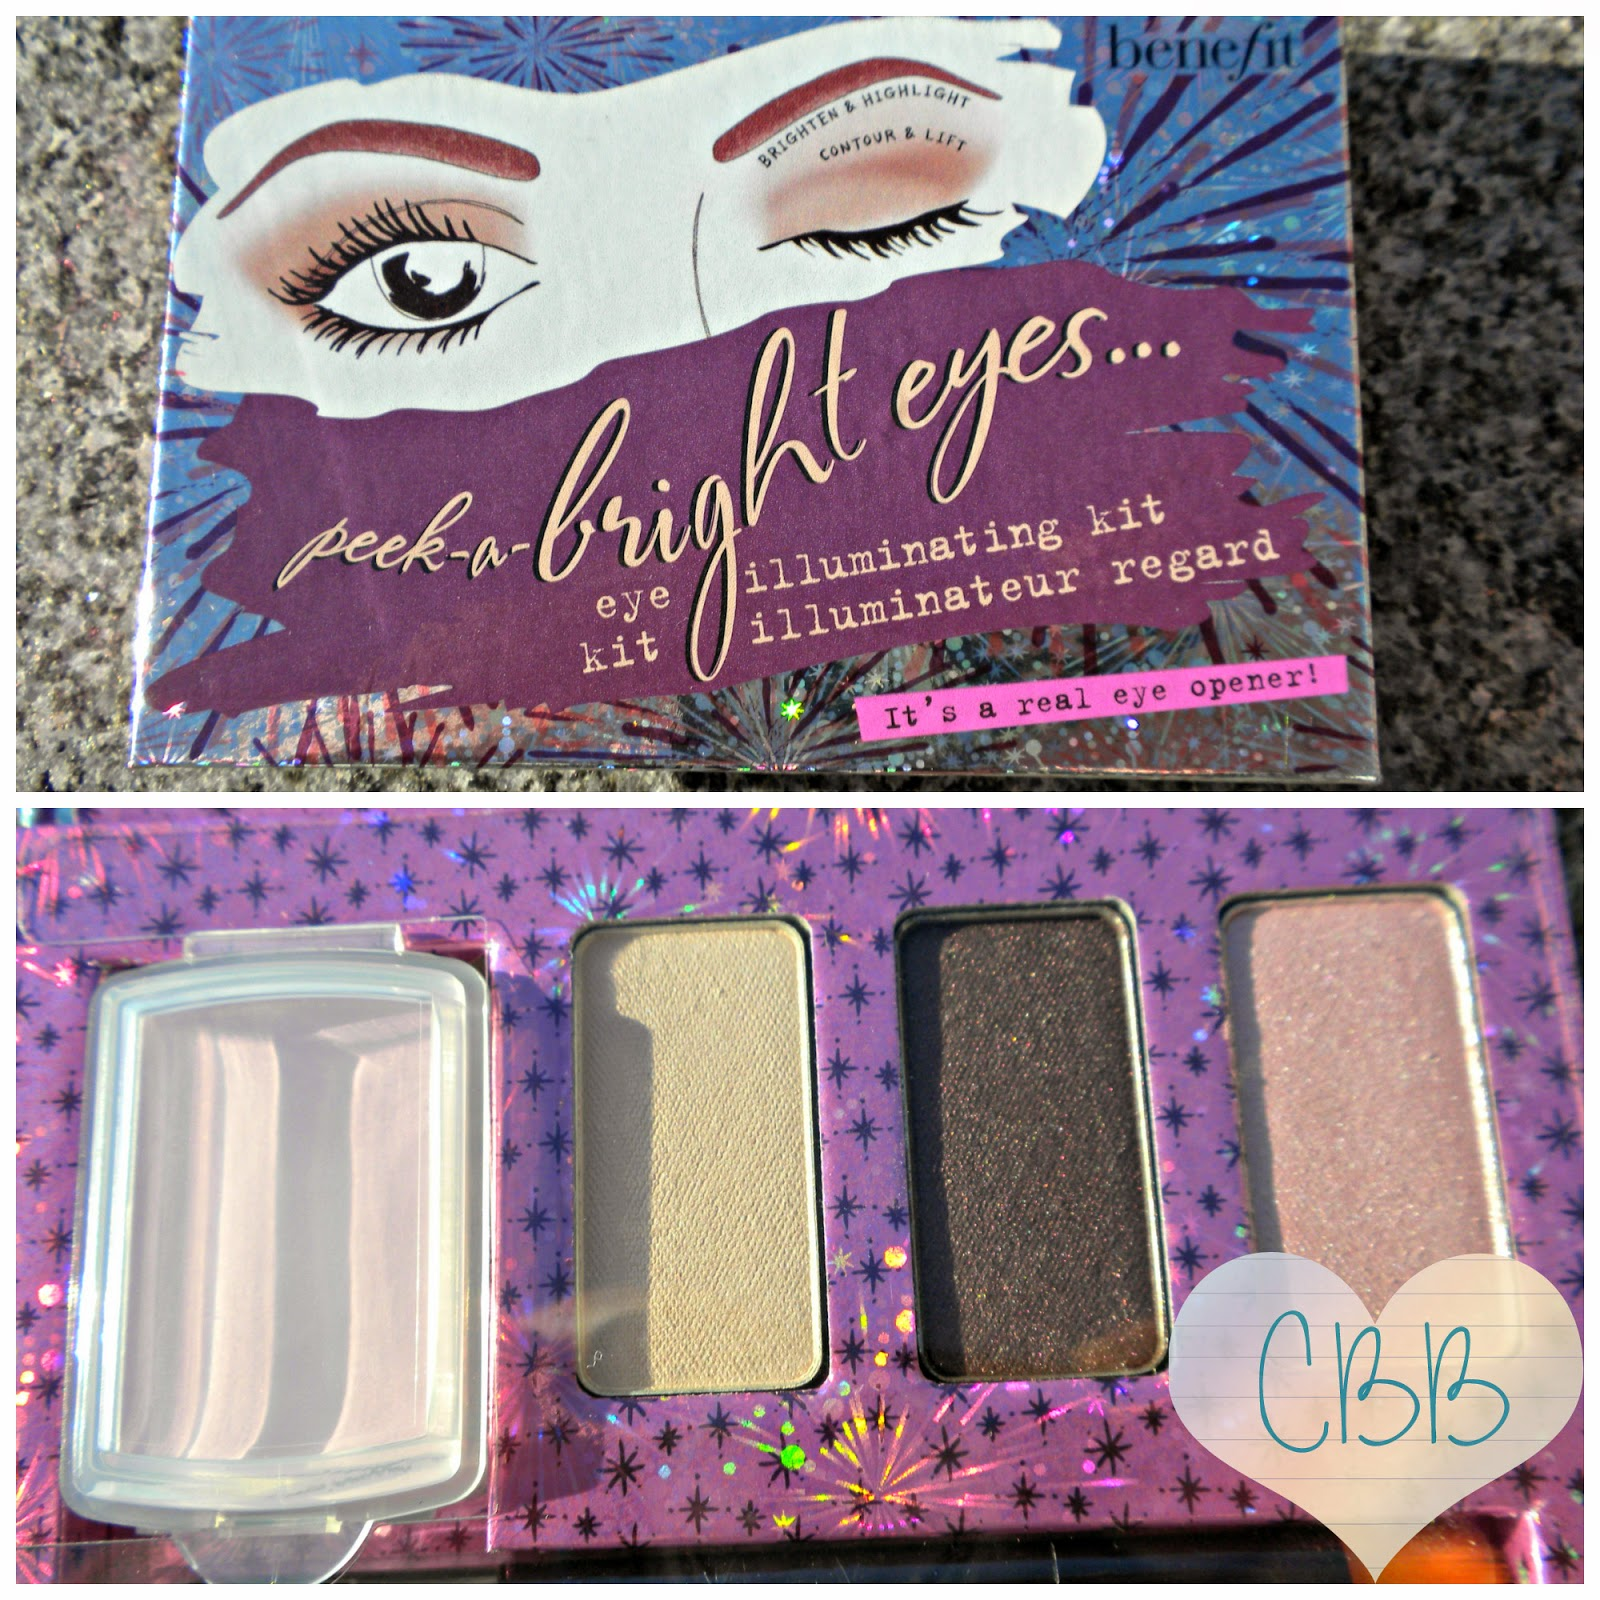 BENEFIT Peek-A-Bright Eyes ($32)